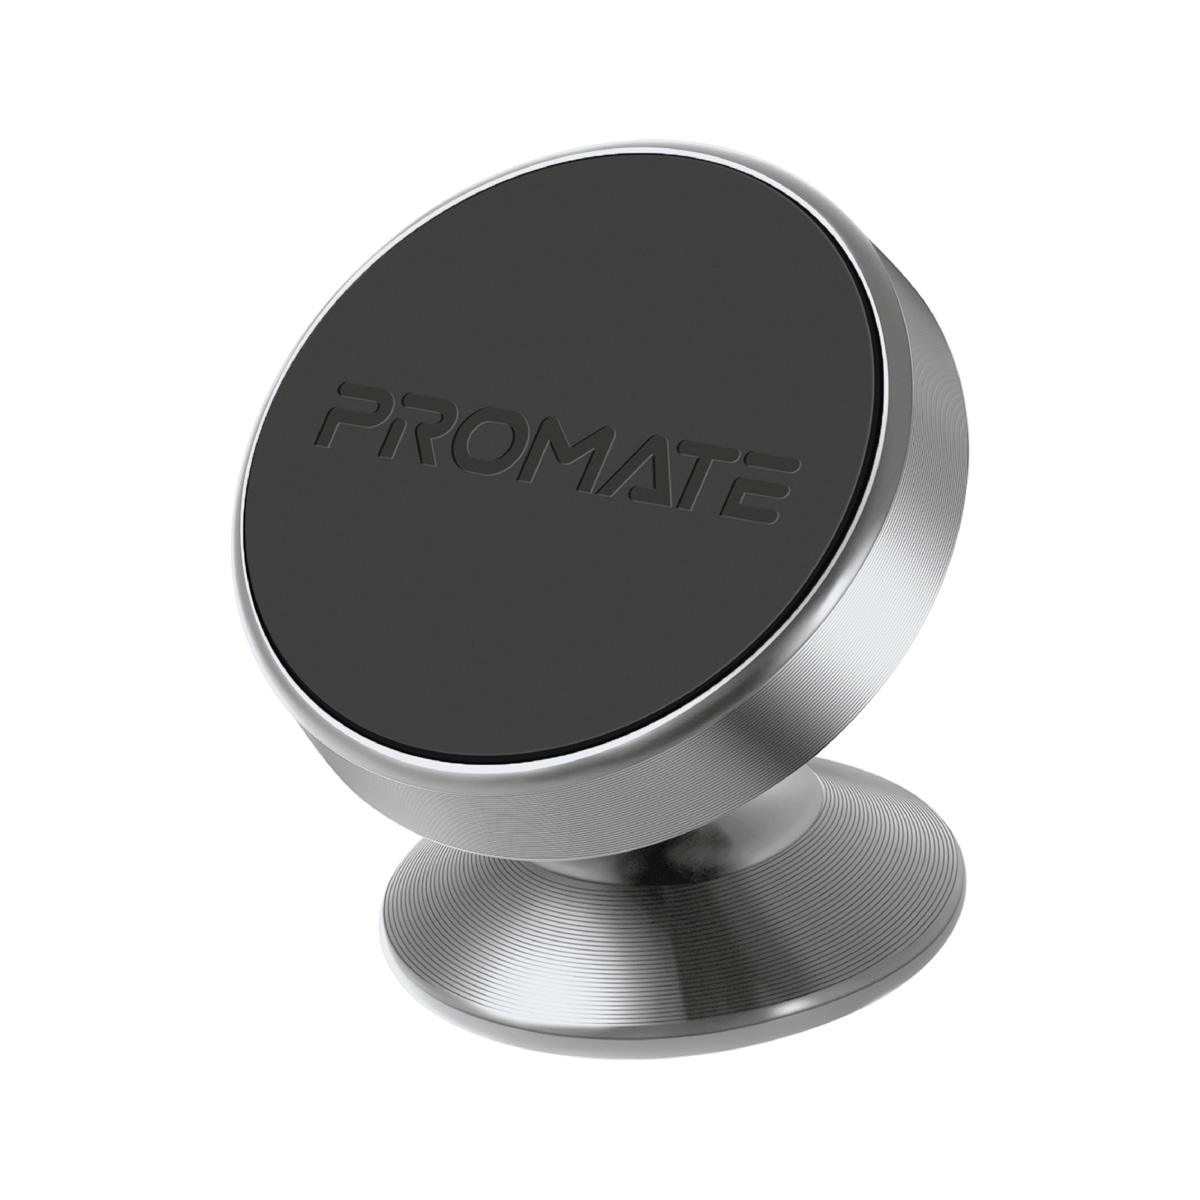 Promate Magnetic Car Phone Holder, Multi-Angle 360 Degree Metallic Magnetic Car Phone Mount with Anti-Slip Surface, Anti- Distraction Design and Fast Swift-Snap Technology for Smartphones, Tablets, GPS, Magnetto-2 Silver